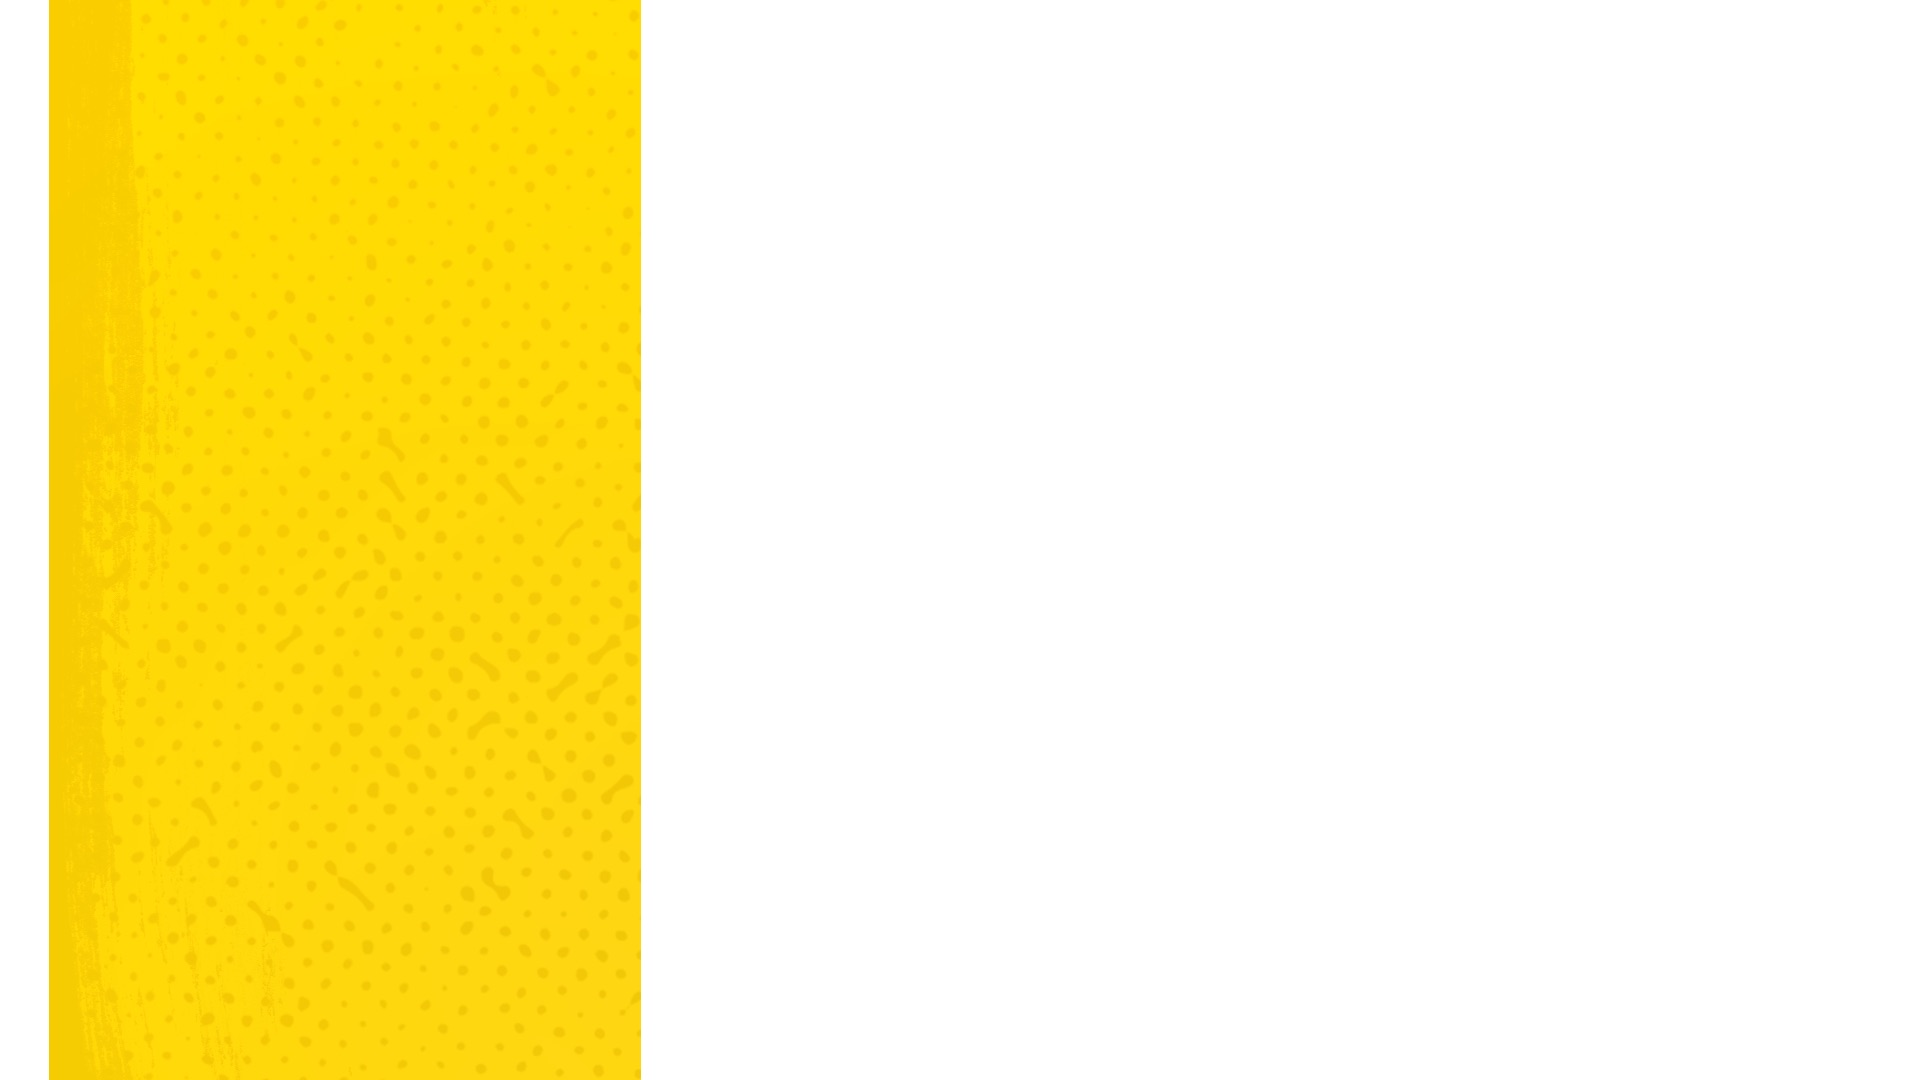 Yellow Side 1920x1080 (PNG)